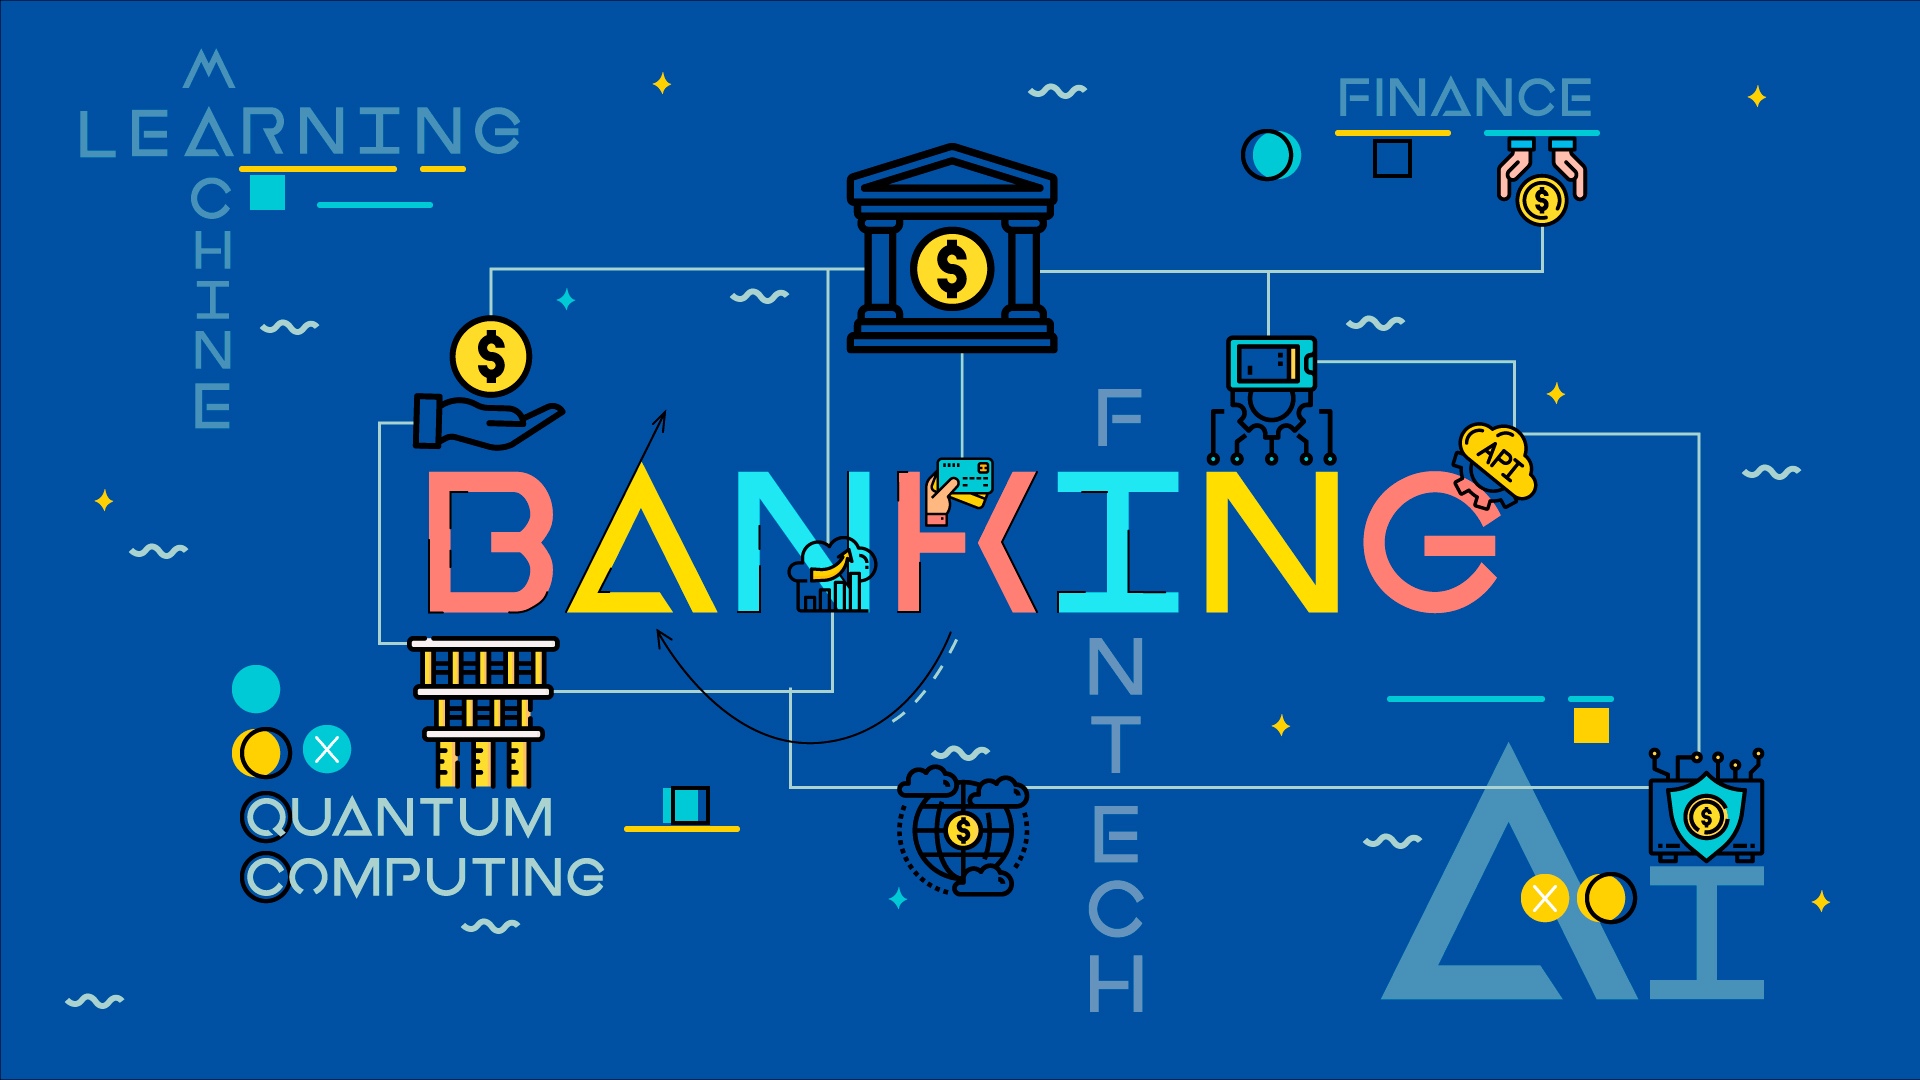 Artificial Intelligence Neural Networks Disrupting Banking Says Deltec Bank, Bahamas